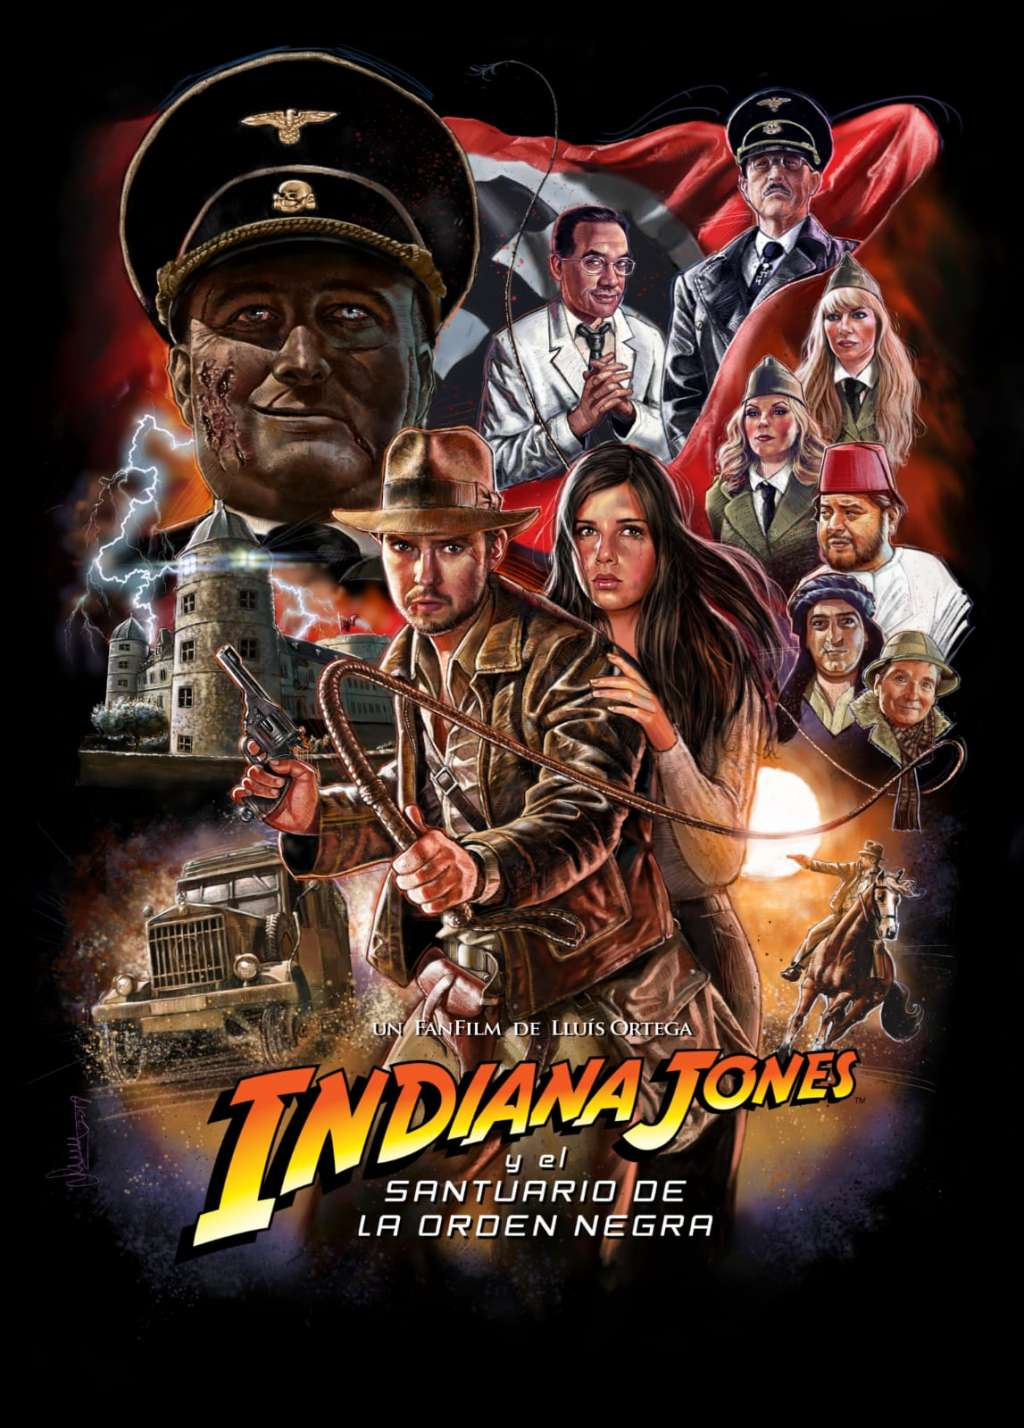 Indiana Jones and the Sanctuary of the Black Order kapak